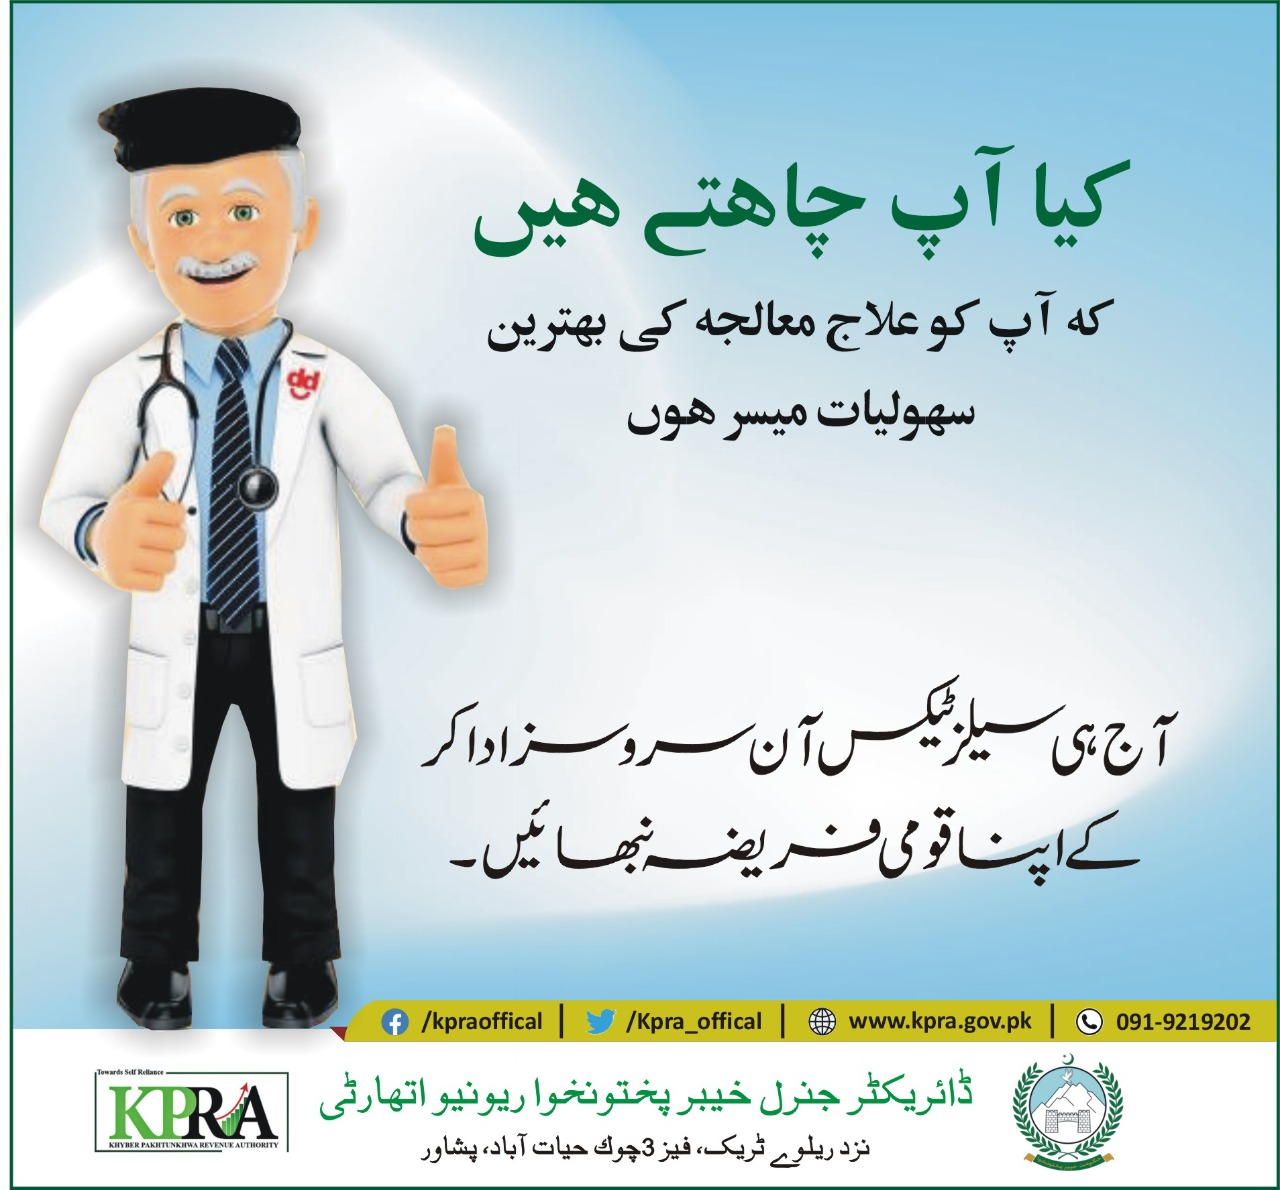 Pay Sales Tax on services to KPRA and make your government resourceful to provide you Healthcare